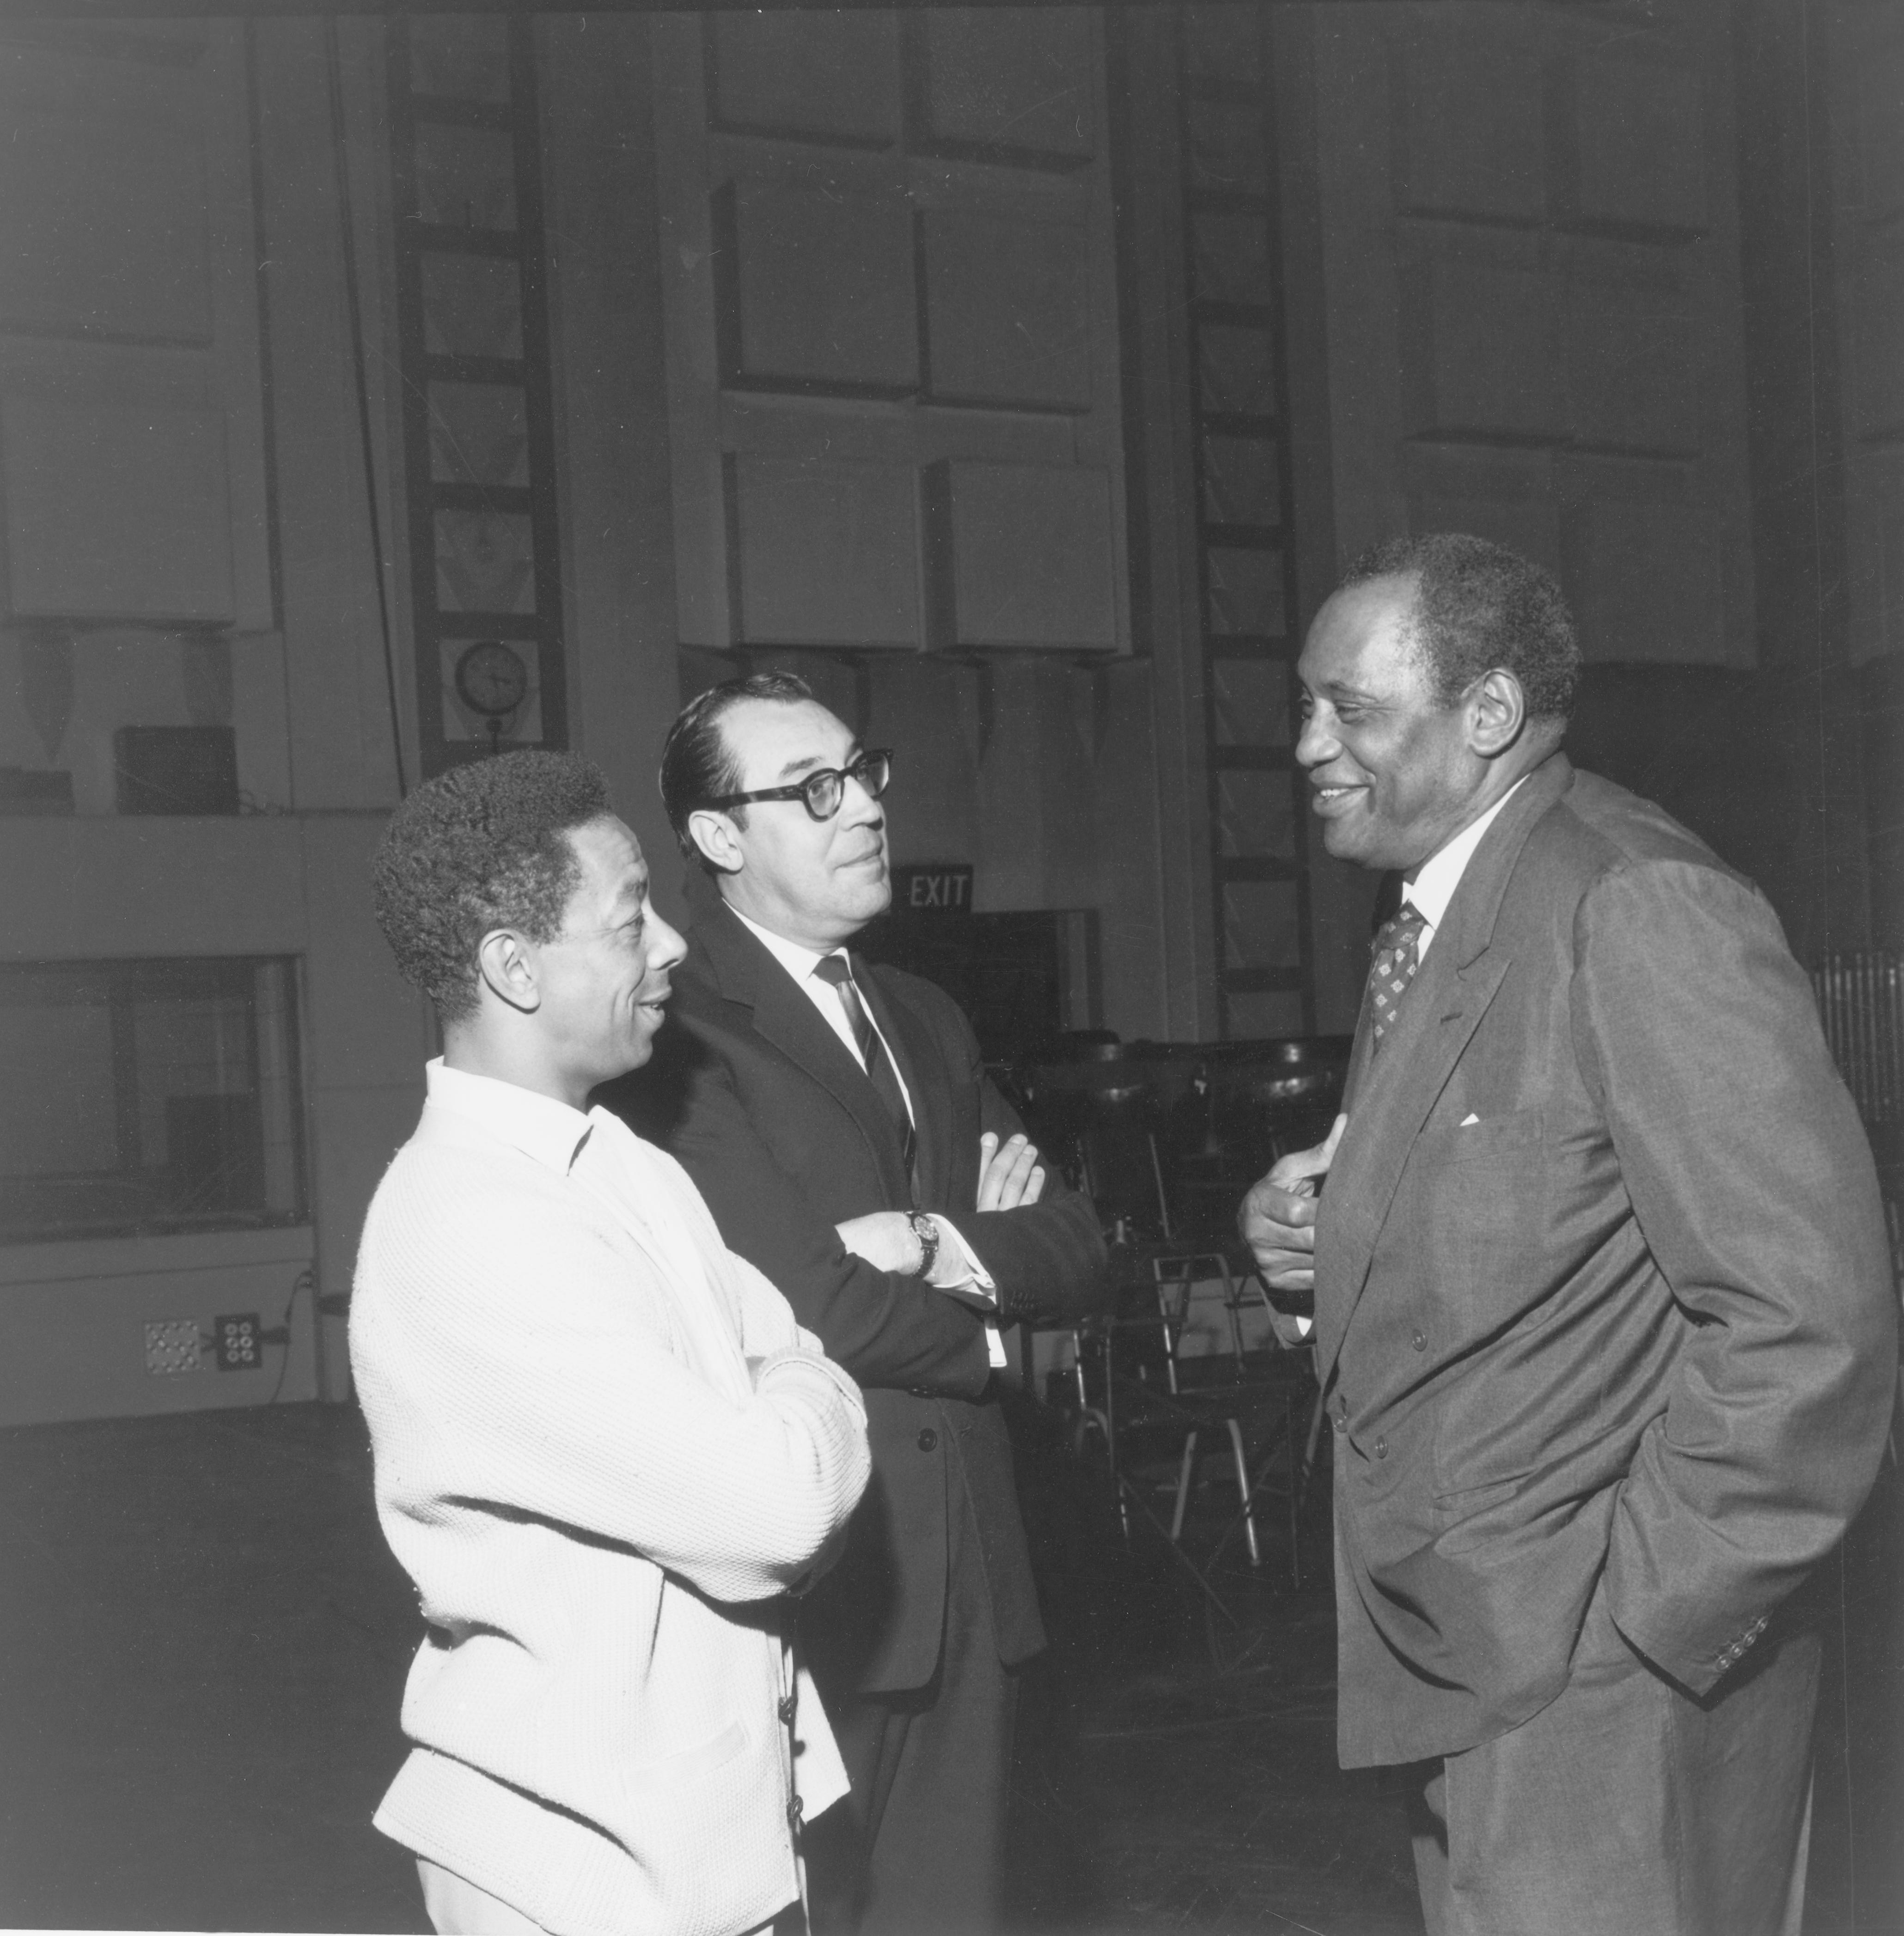 Geoff Love with Norman Newell and Paul Robeson